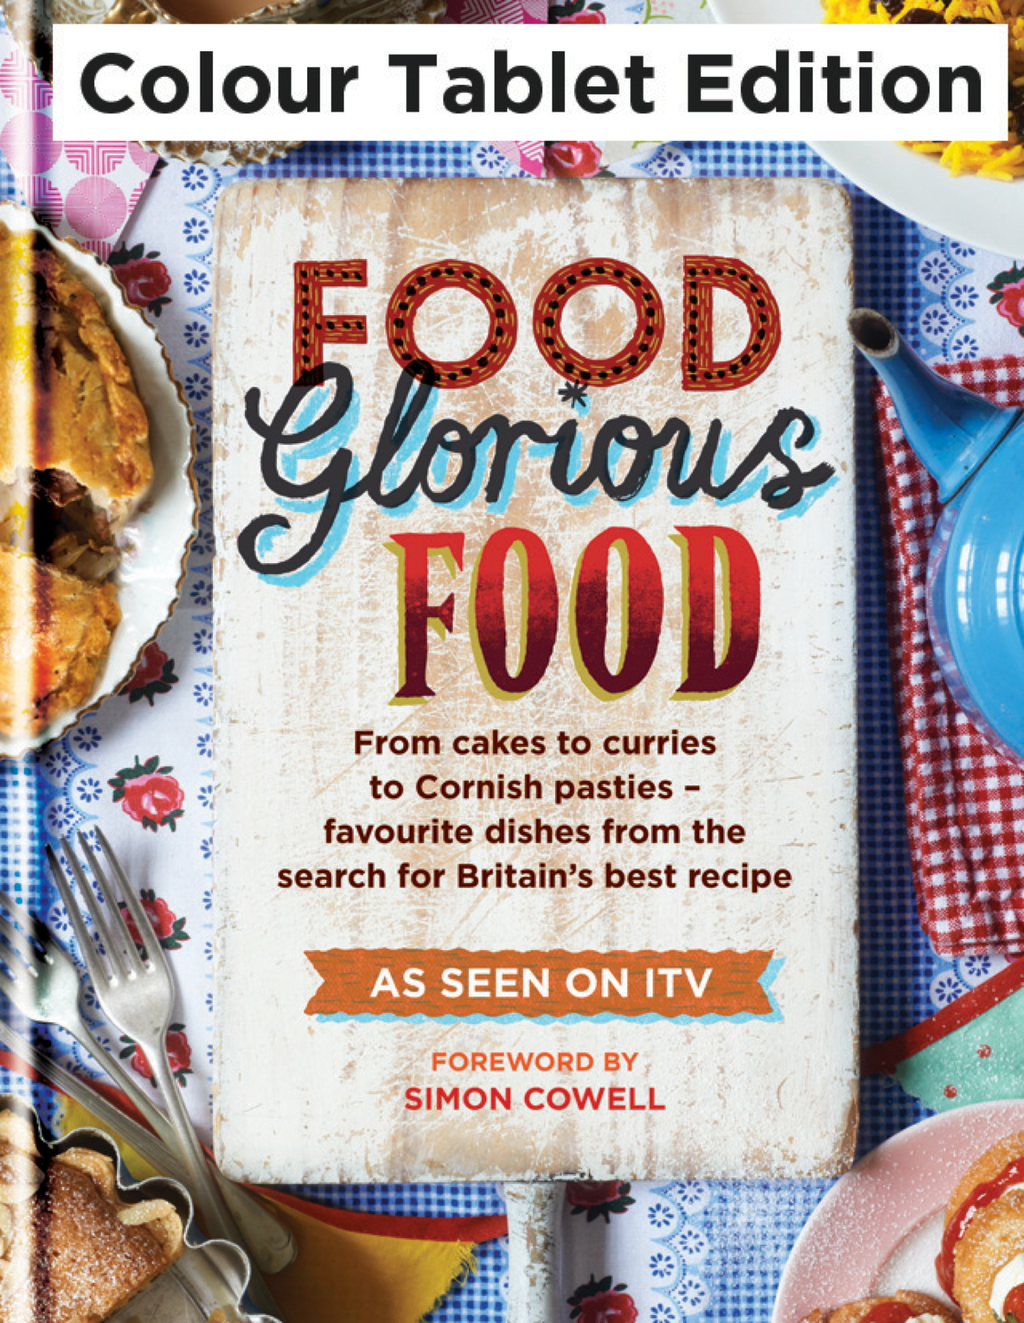 Food Glorious Food Family Recipes for the Nation's Favourite Dishes